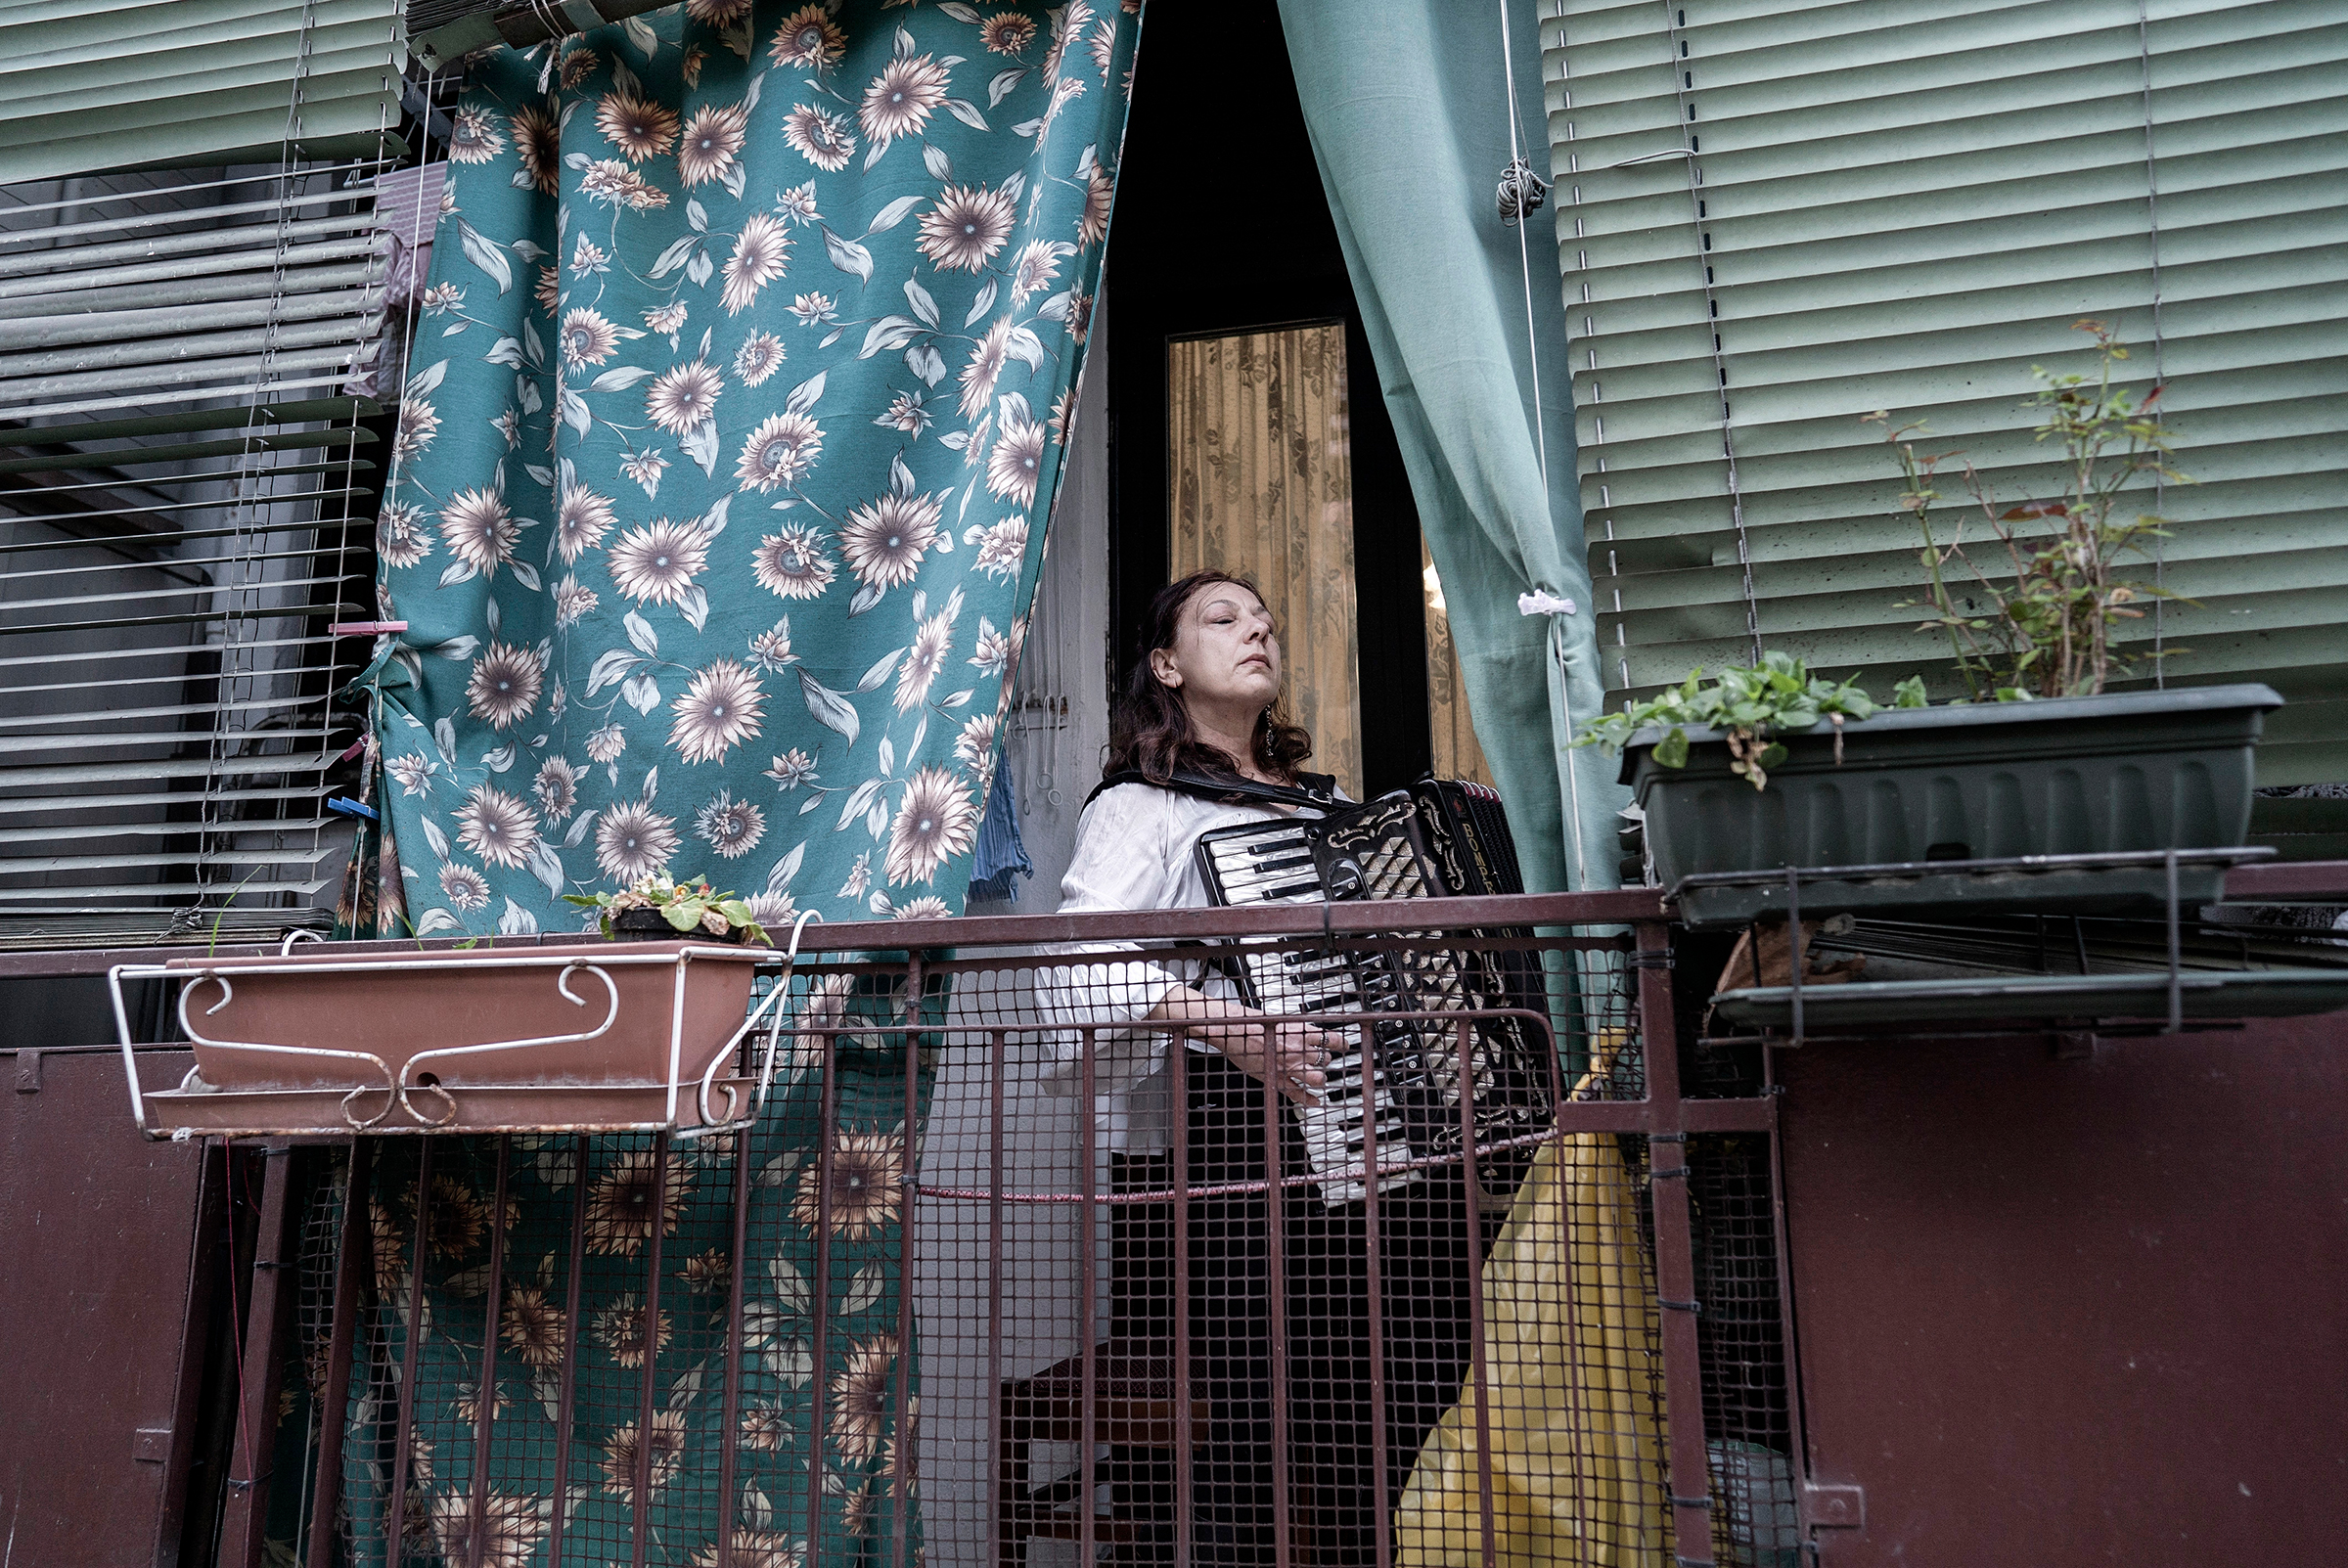 A woman plays music from her balcony in Milan on March 13. Italians remained essentially under house arrest as the nation—the European front in the global fight against coronavirus—had ordered extraordinary restrictions on their movement to prevent its spread.